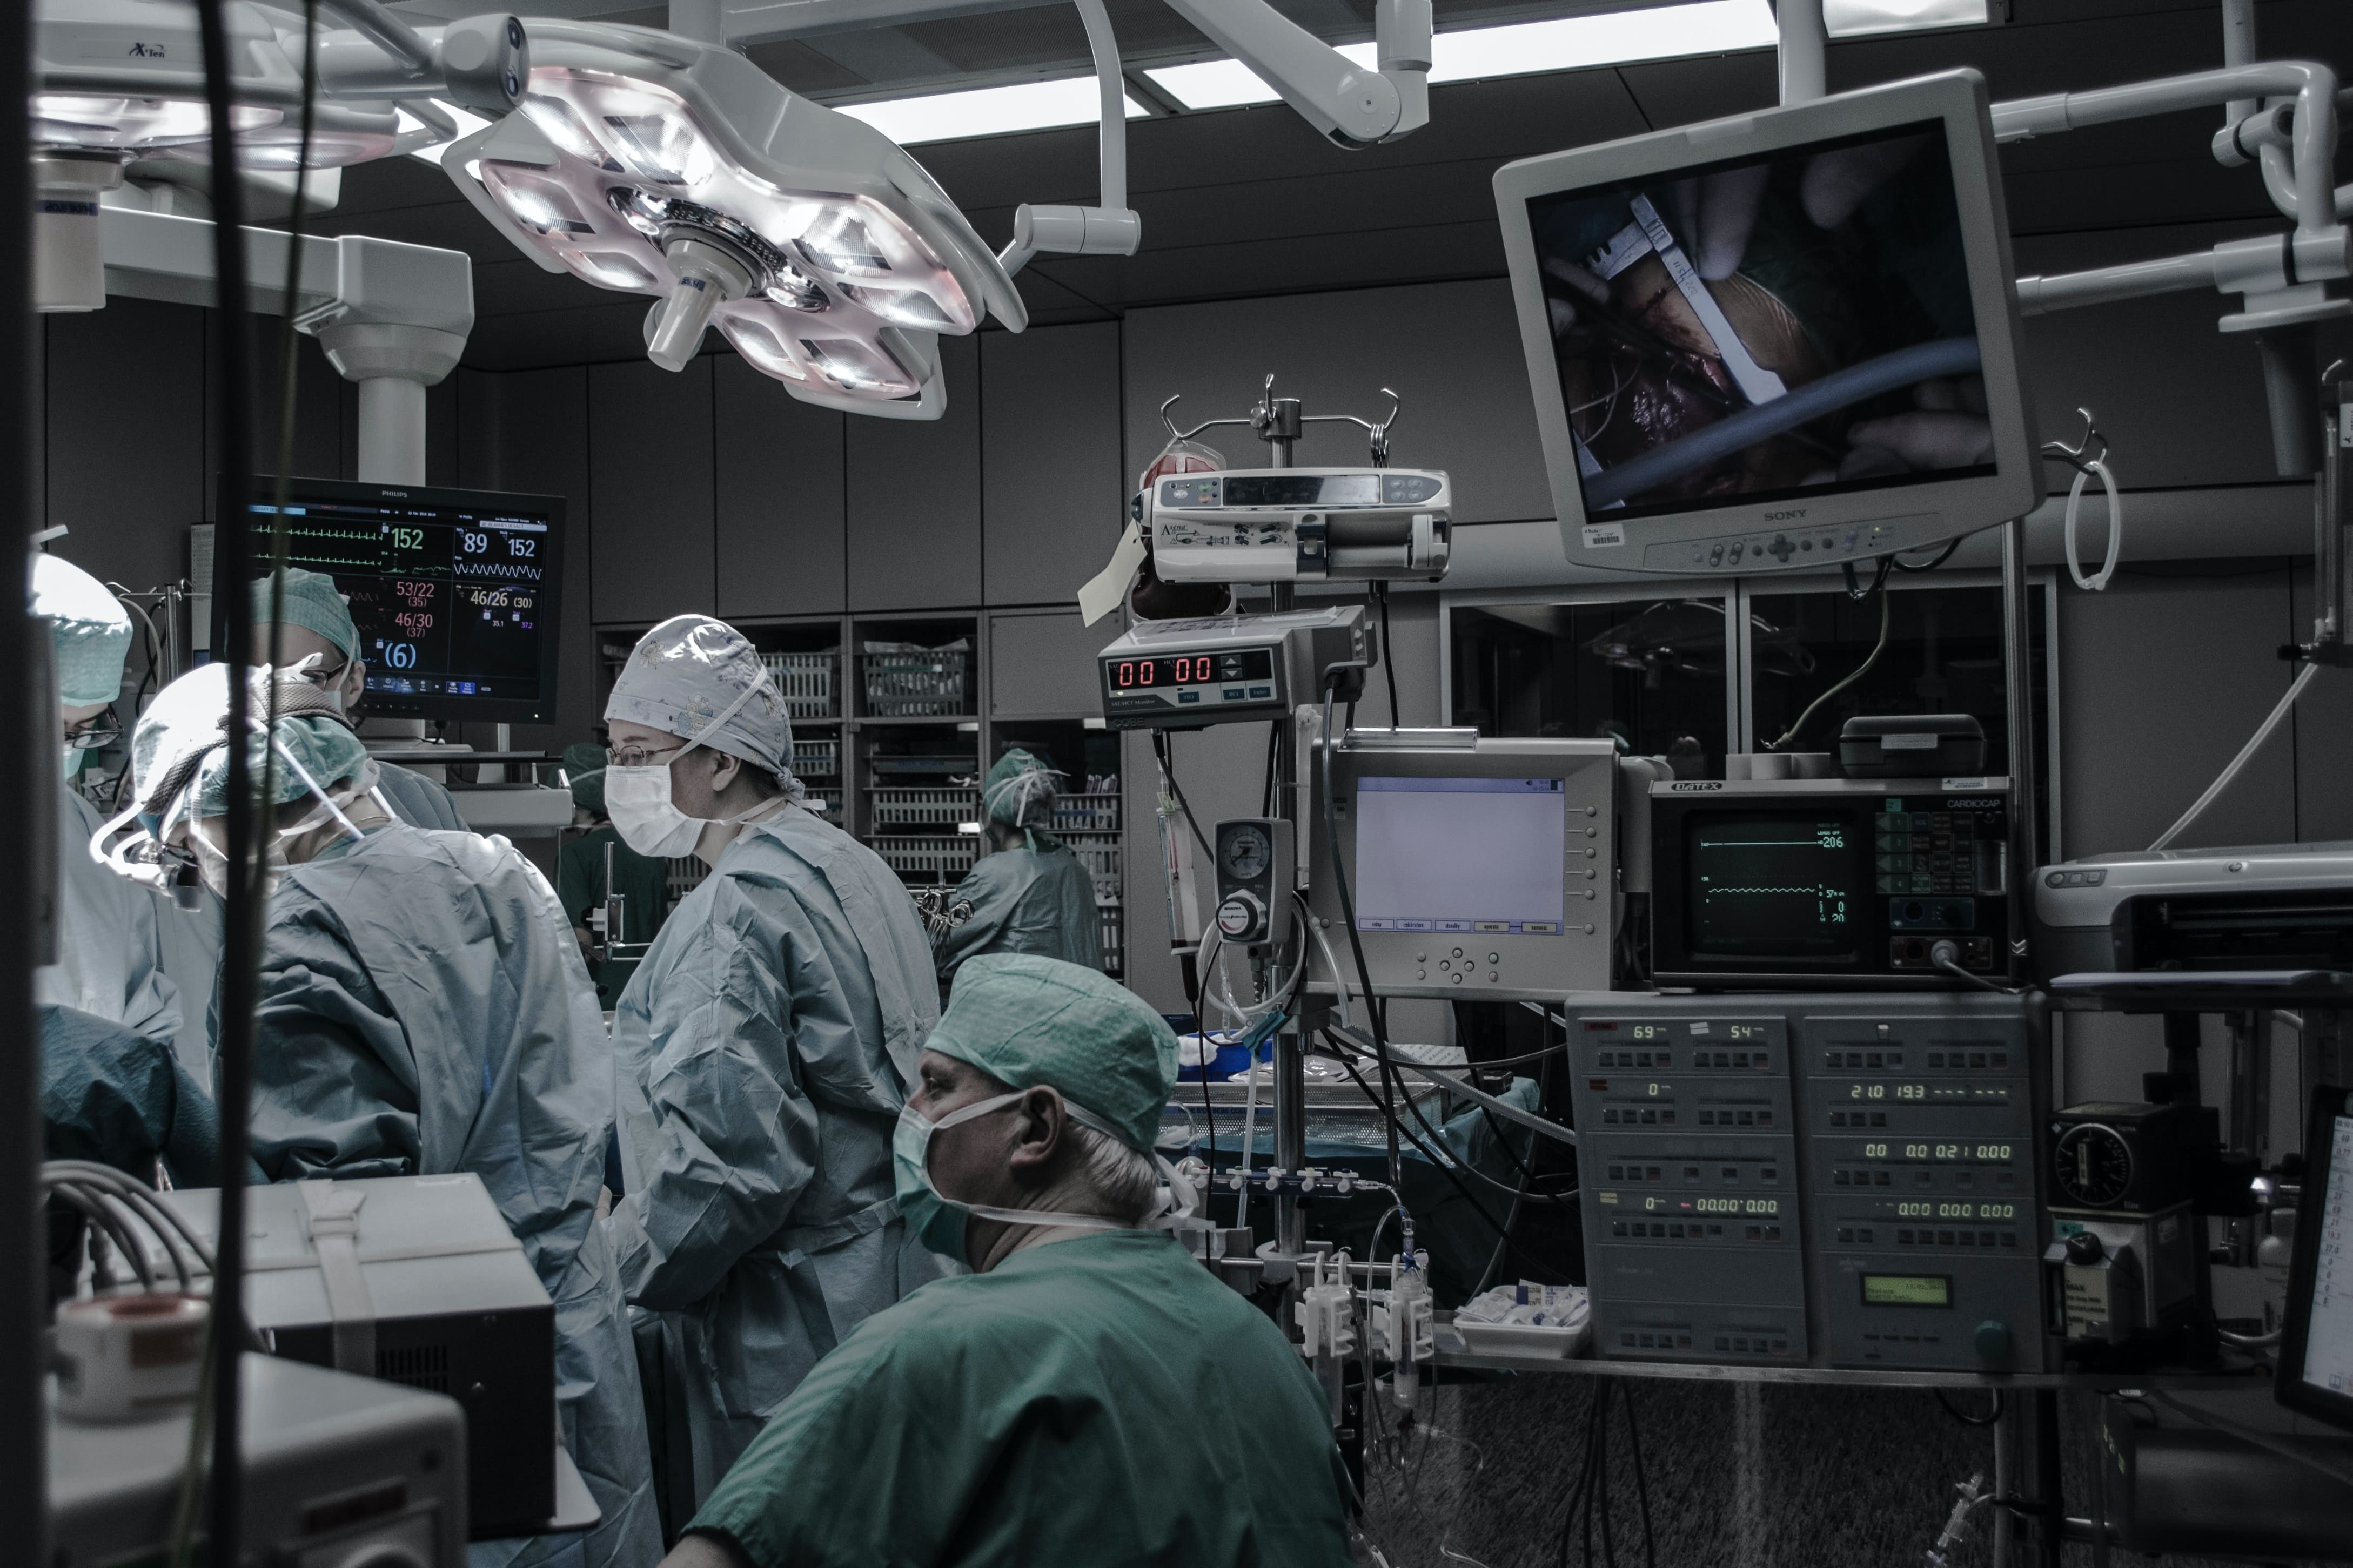 medical fasteners are a critical component during medical procedures such as this scene in an operating theatre